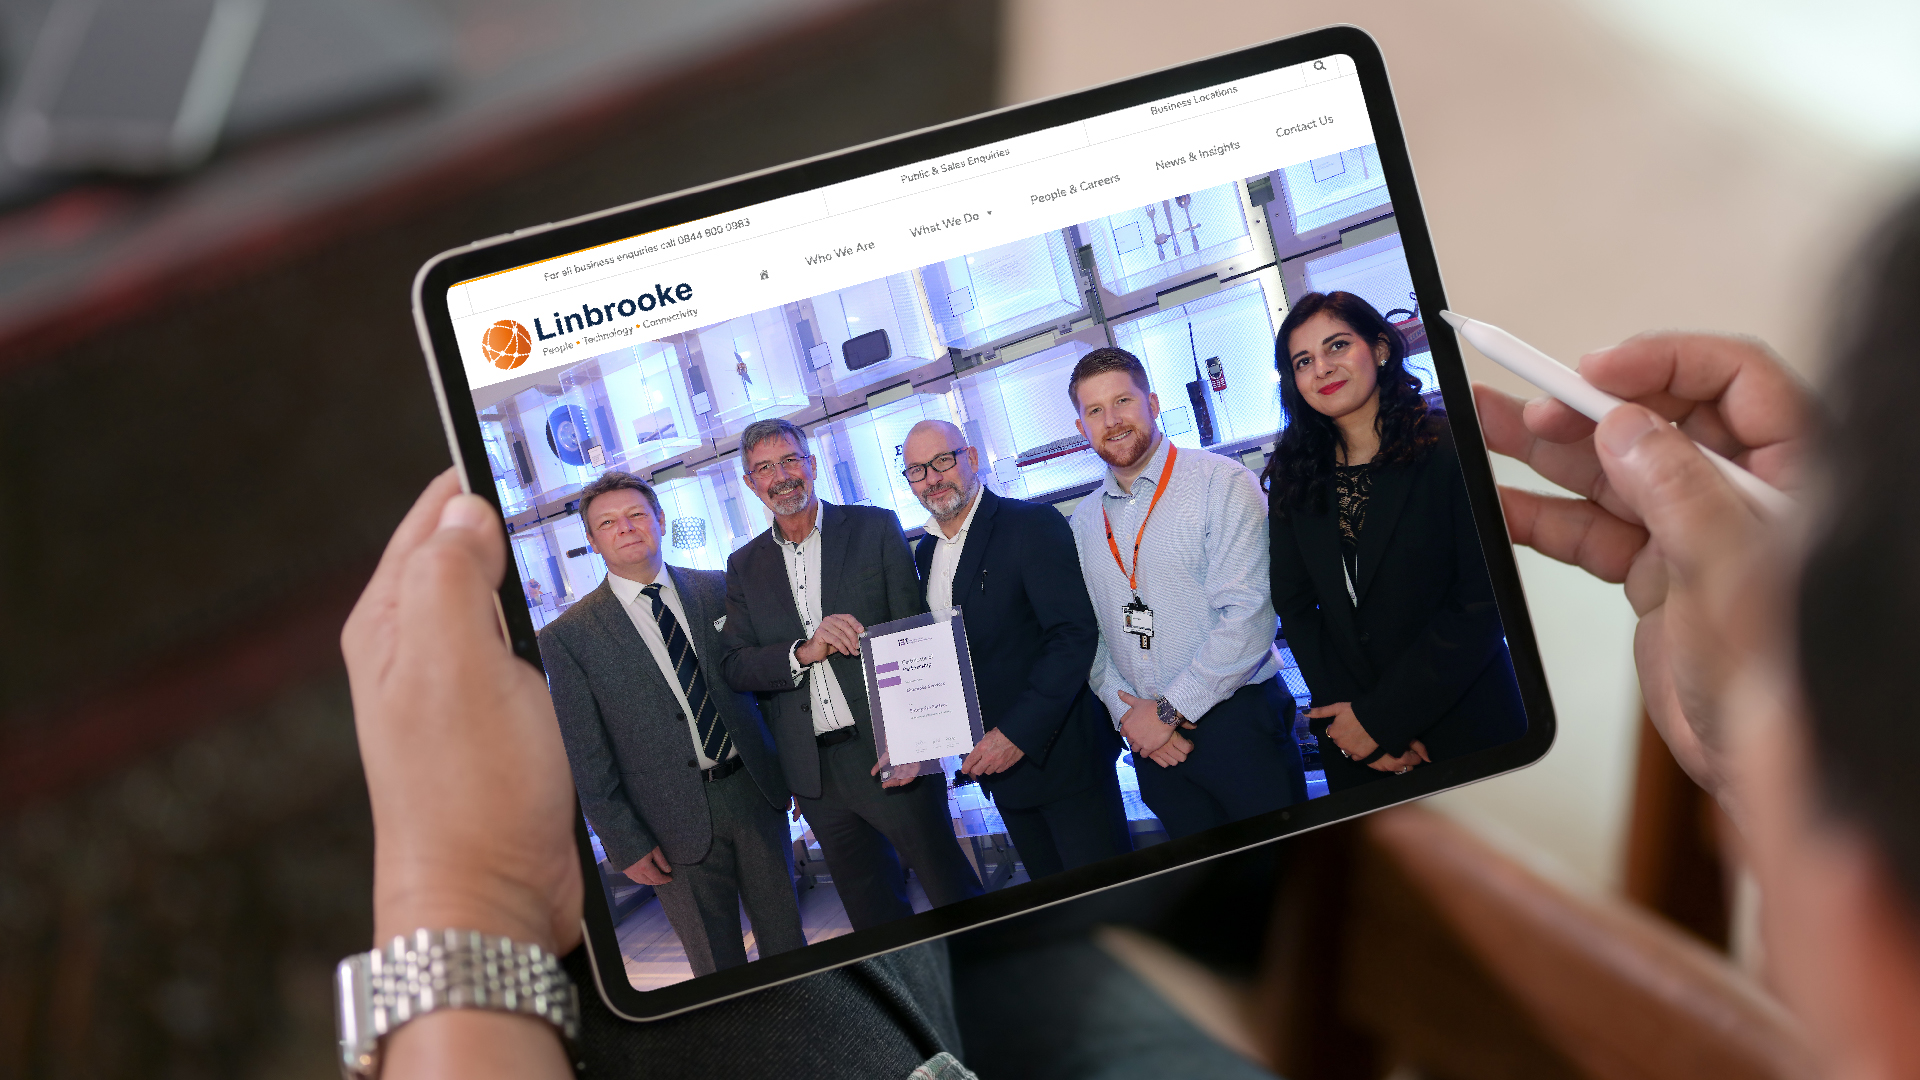 Linbrooke - Institute of Engineering and Technology Partnership